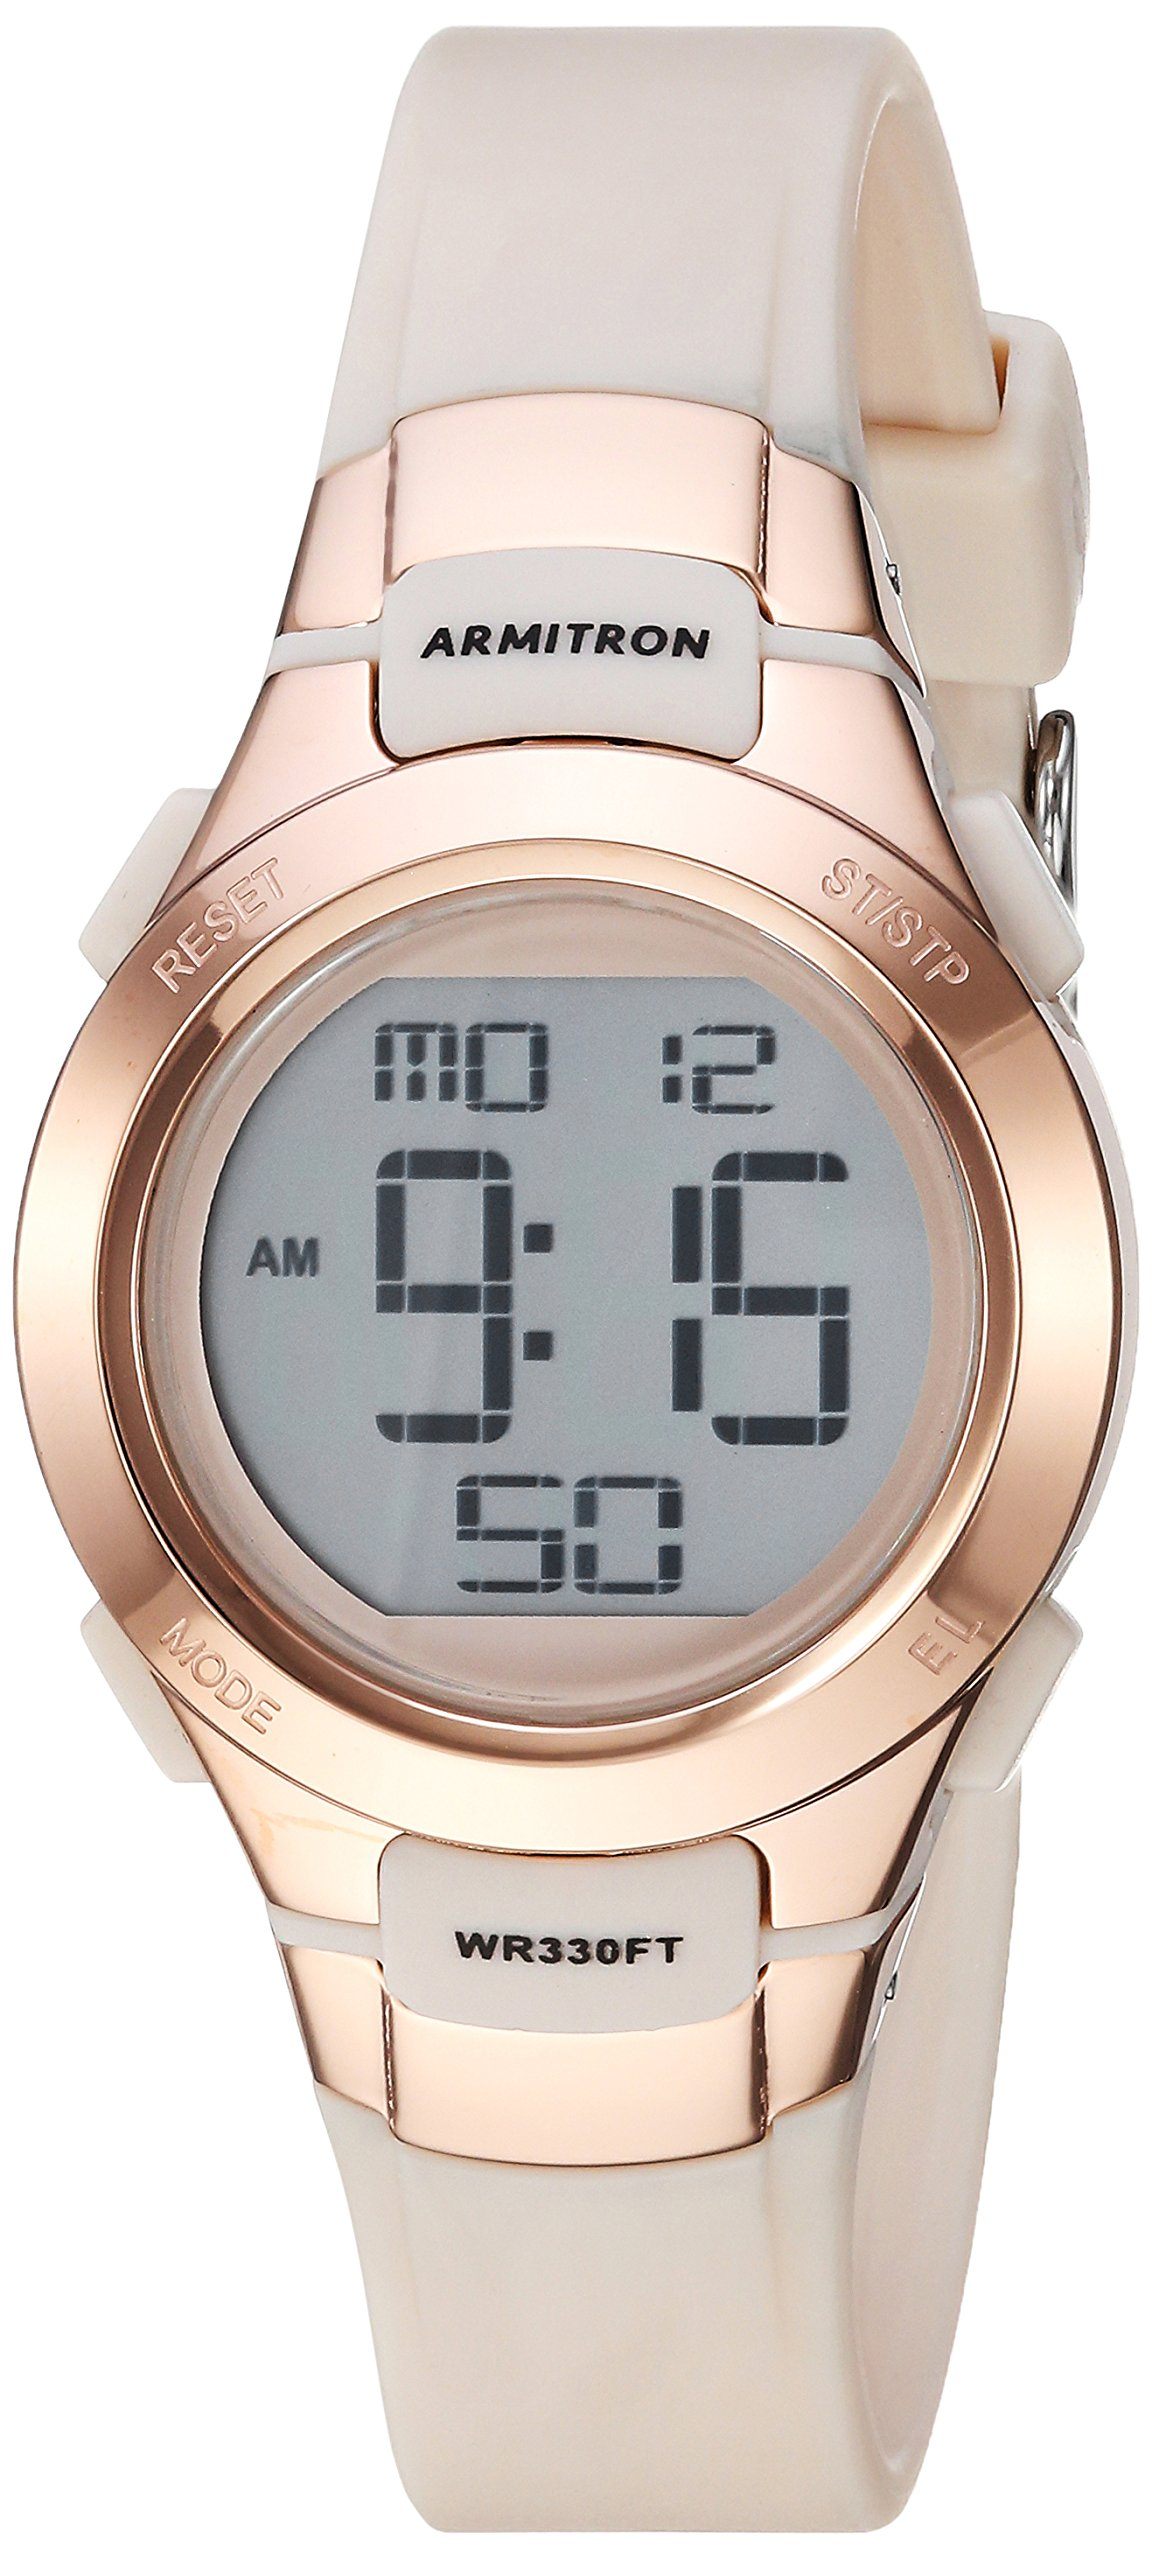 Armitron Sport Women's 45/7012PBH Rose Gold-Tone Accented Digital Chronograph Blush Pink Resin Strap Watch by Armitron Sport